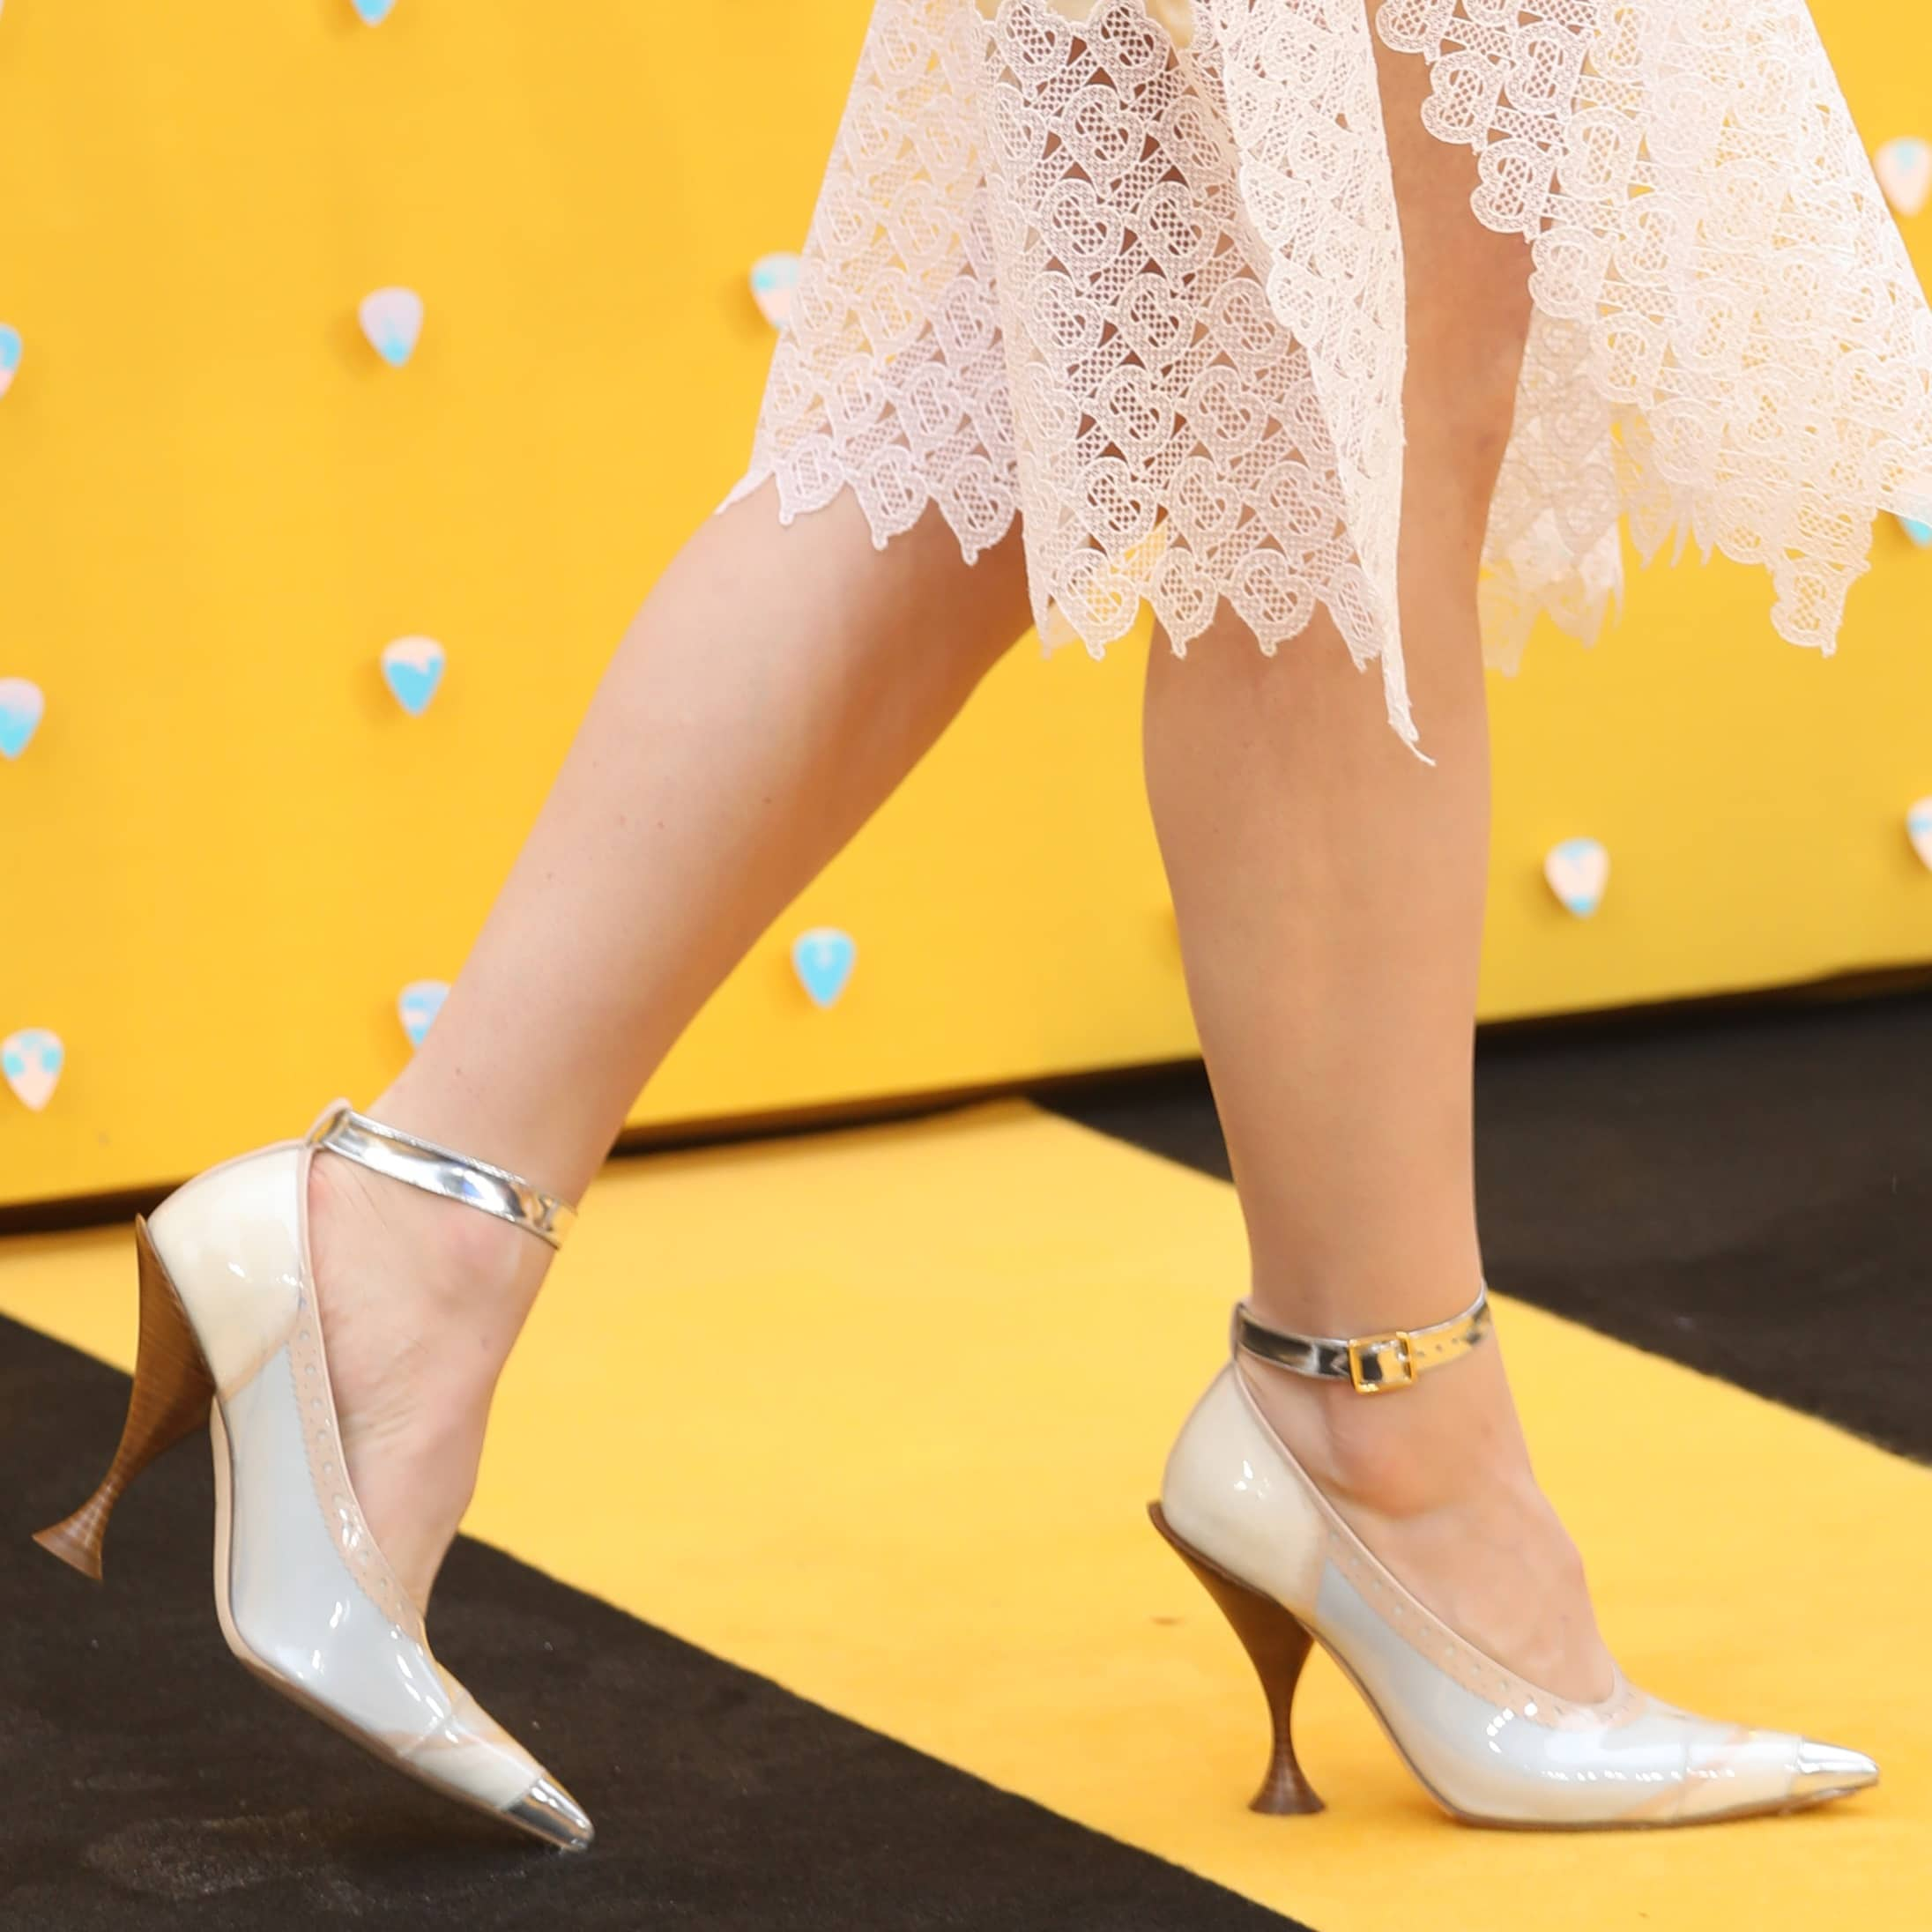 Lily James flashed her hot legs in sexy Burberry heels